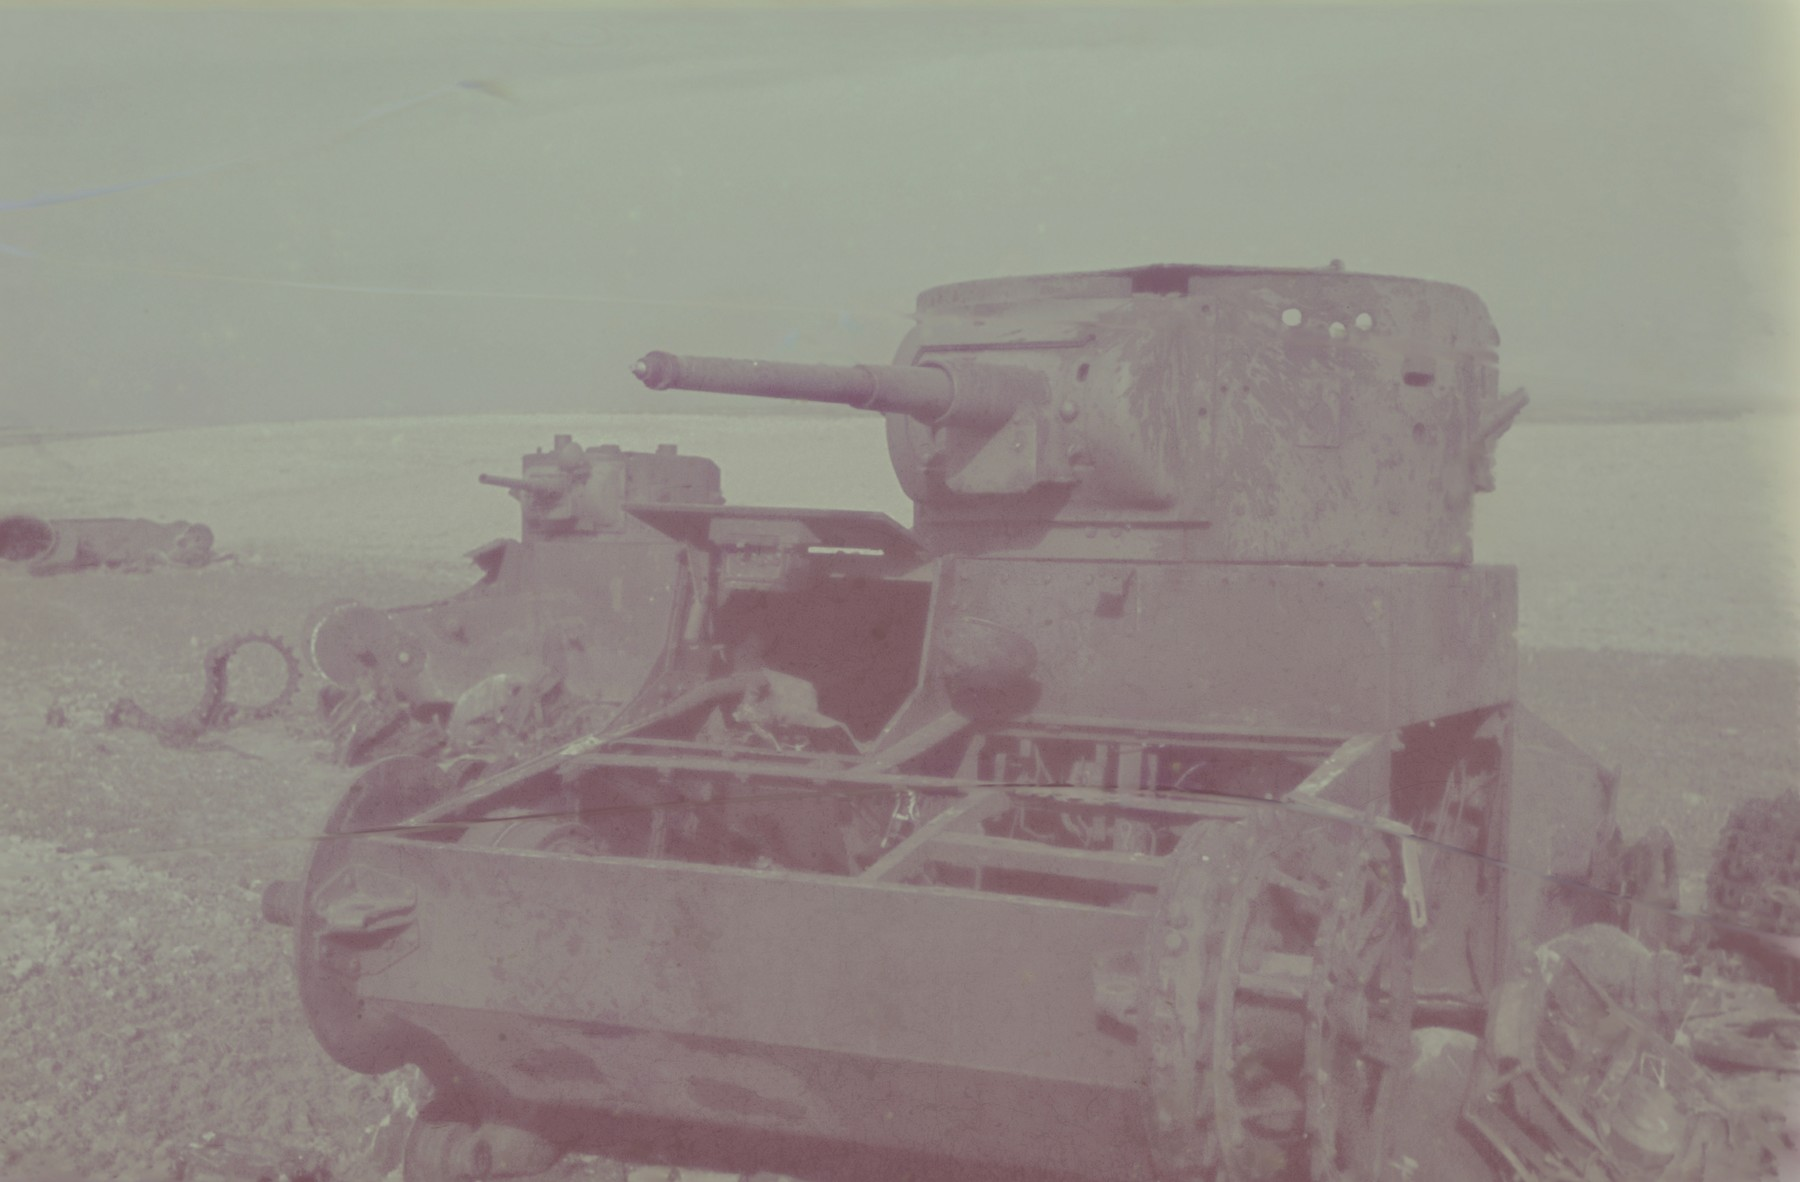 View of an abandoned armored vehicle photographed by Walter Genewein.